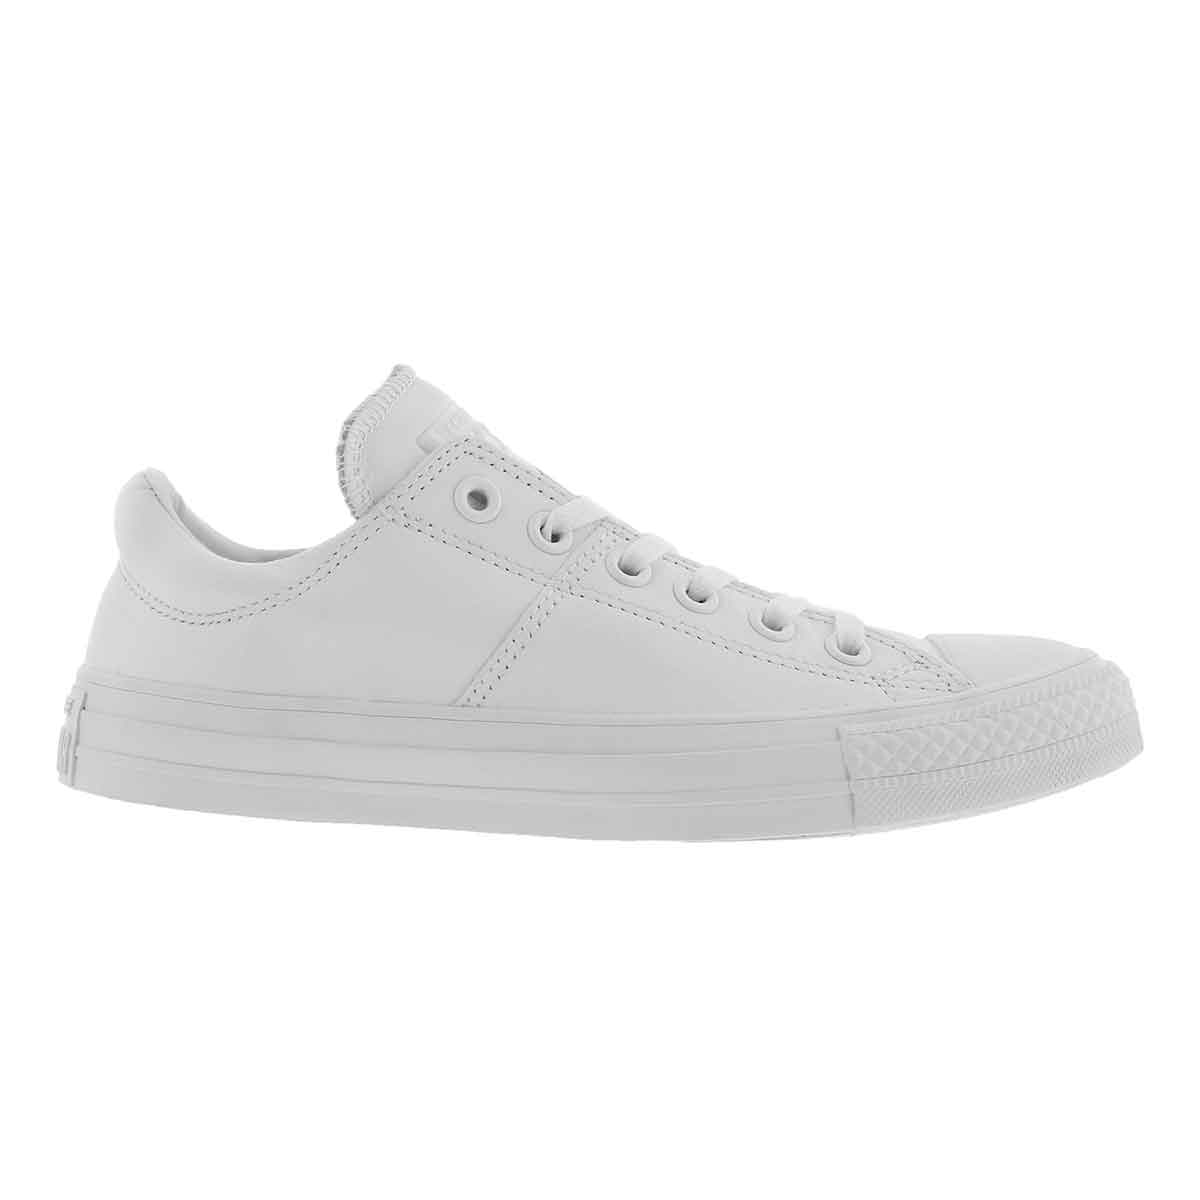 Lds CTAS Madison Leather wht snkr